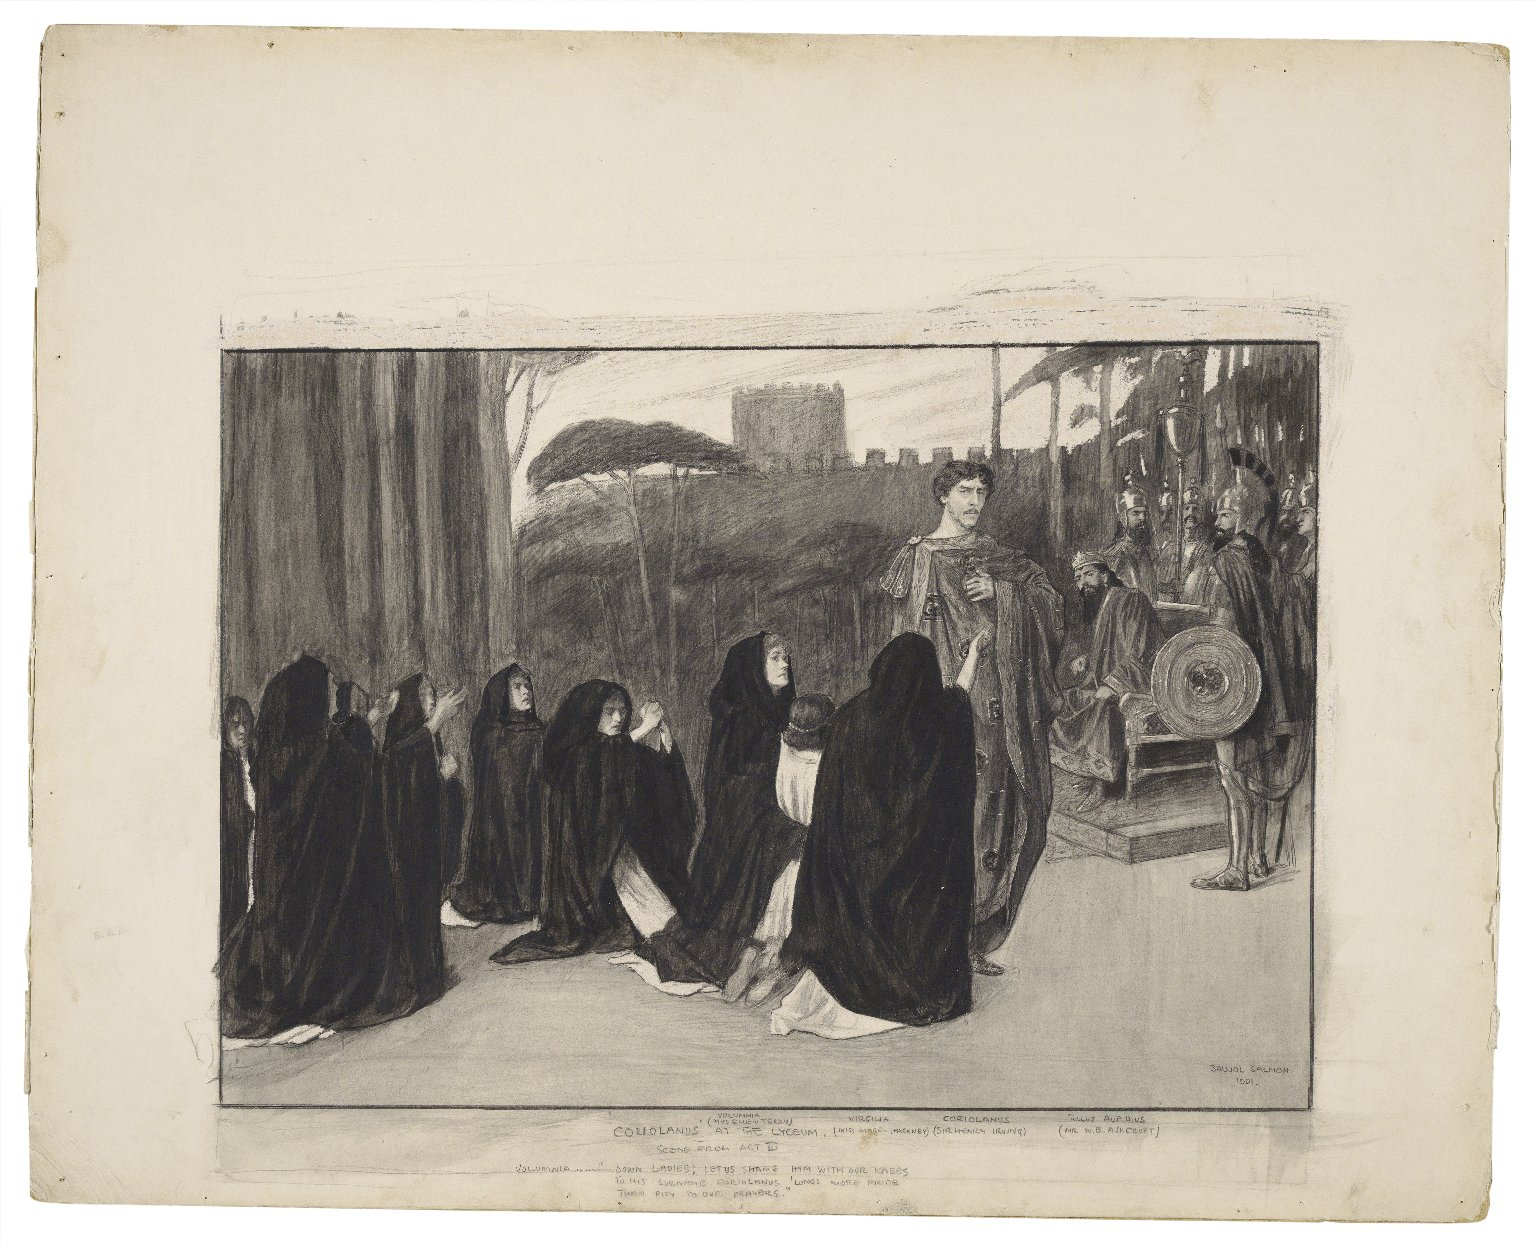 """Coriolanus at the Lyceum, scene from act III, Volumnia -- """"Down ladies; let us shame him with our knees ..."""" [graphic] / Balliol Salmon, 1901."""